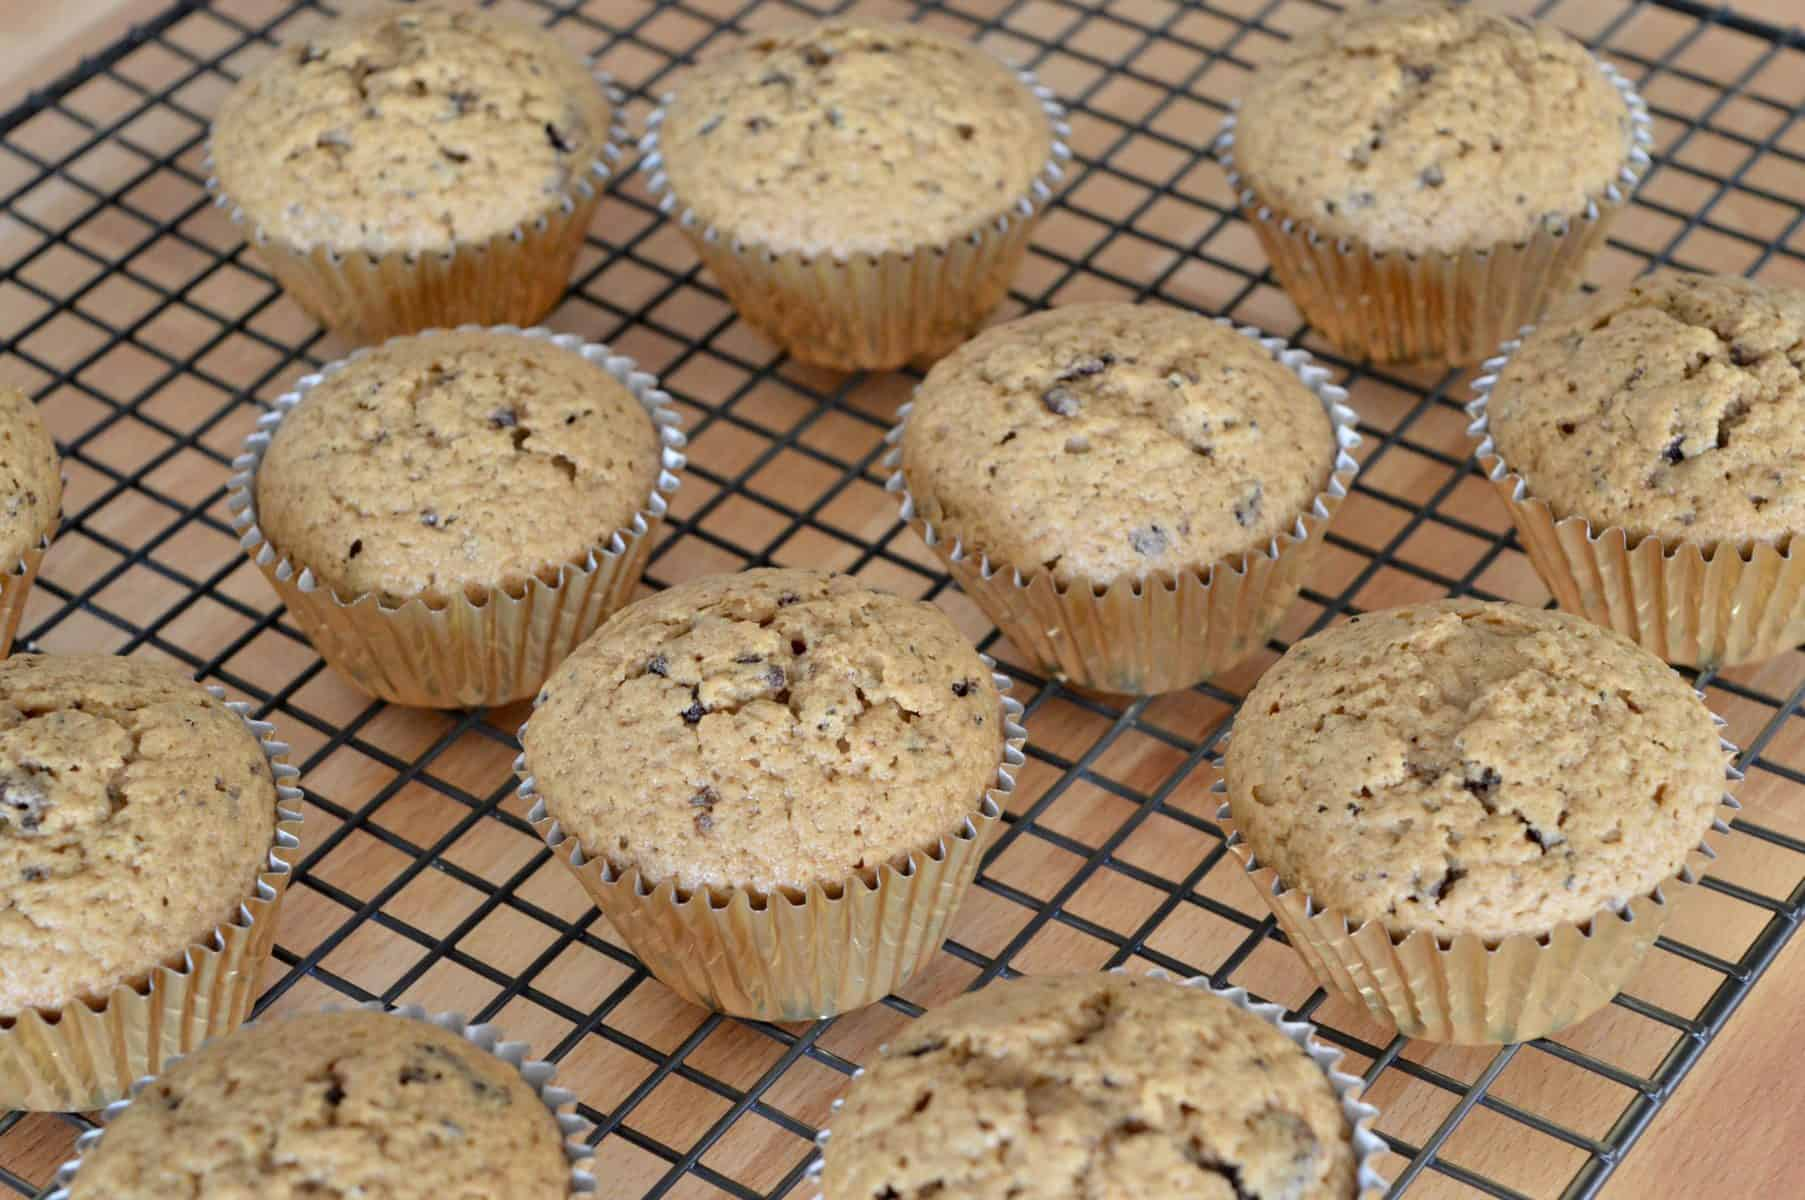 muffins in gold liners cooling on a wire cooling rack.